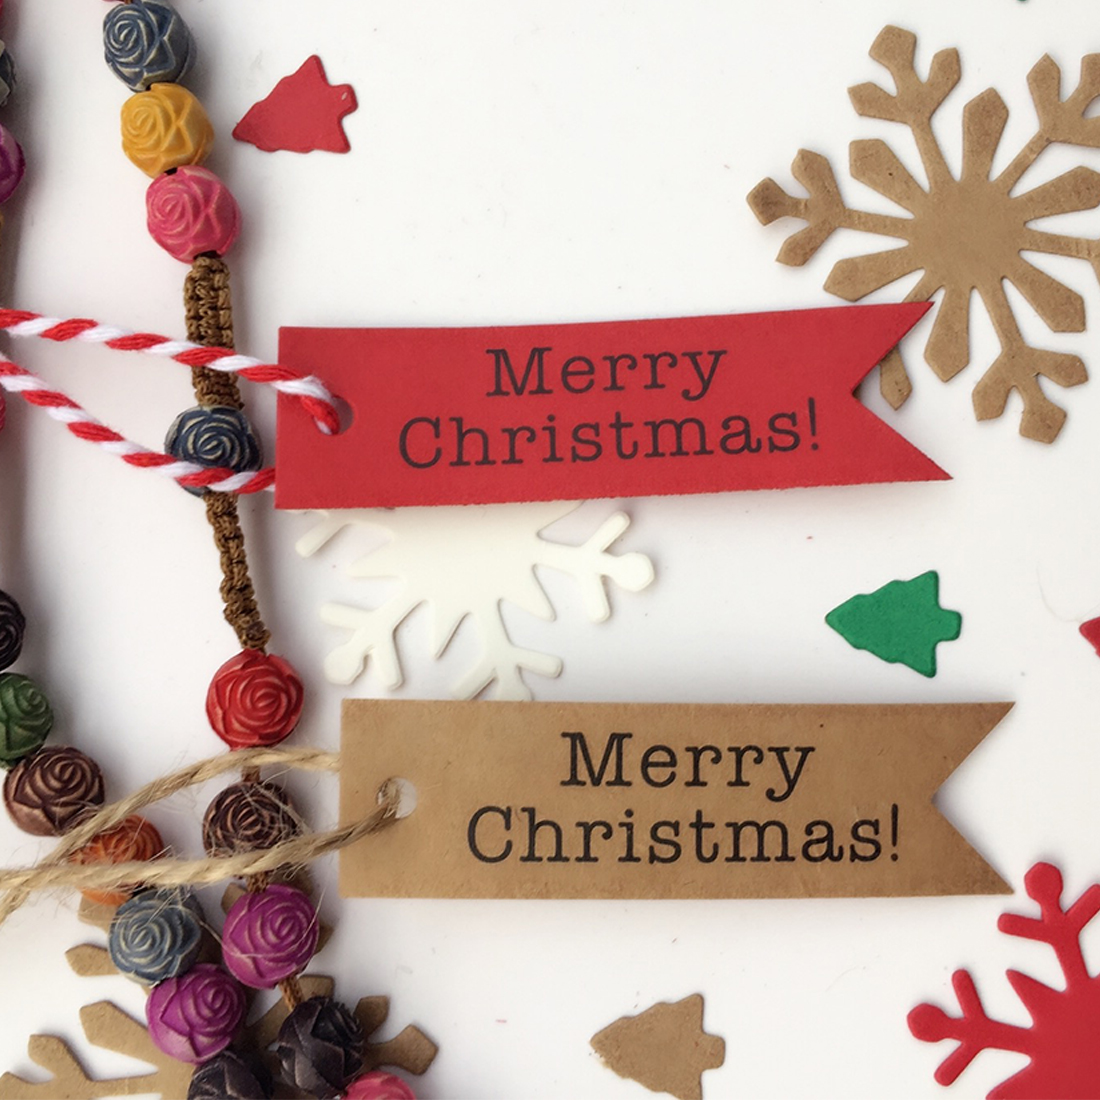 Good Wholesale 100pcs Decorative Merry Christmas Paper Gift Tags Label Hanging Cards DIY Home Party Christmas Accessories